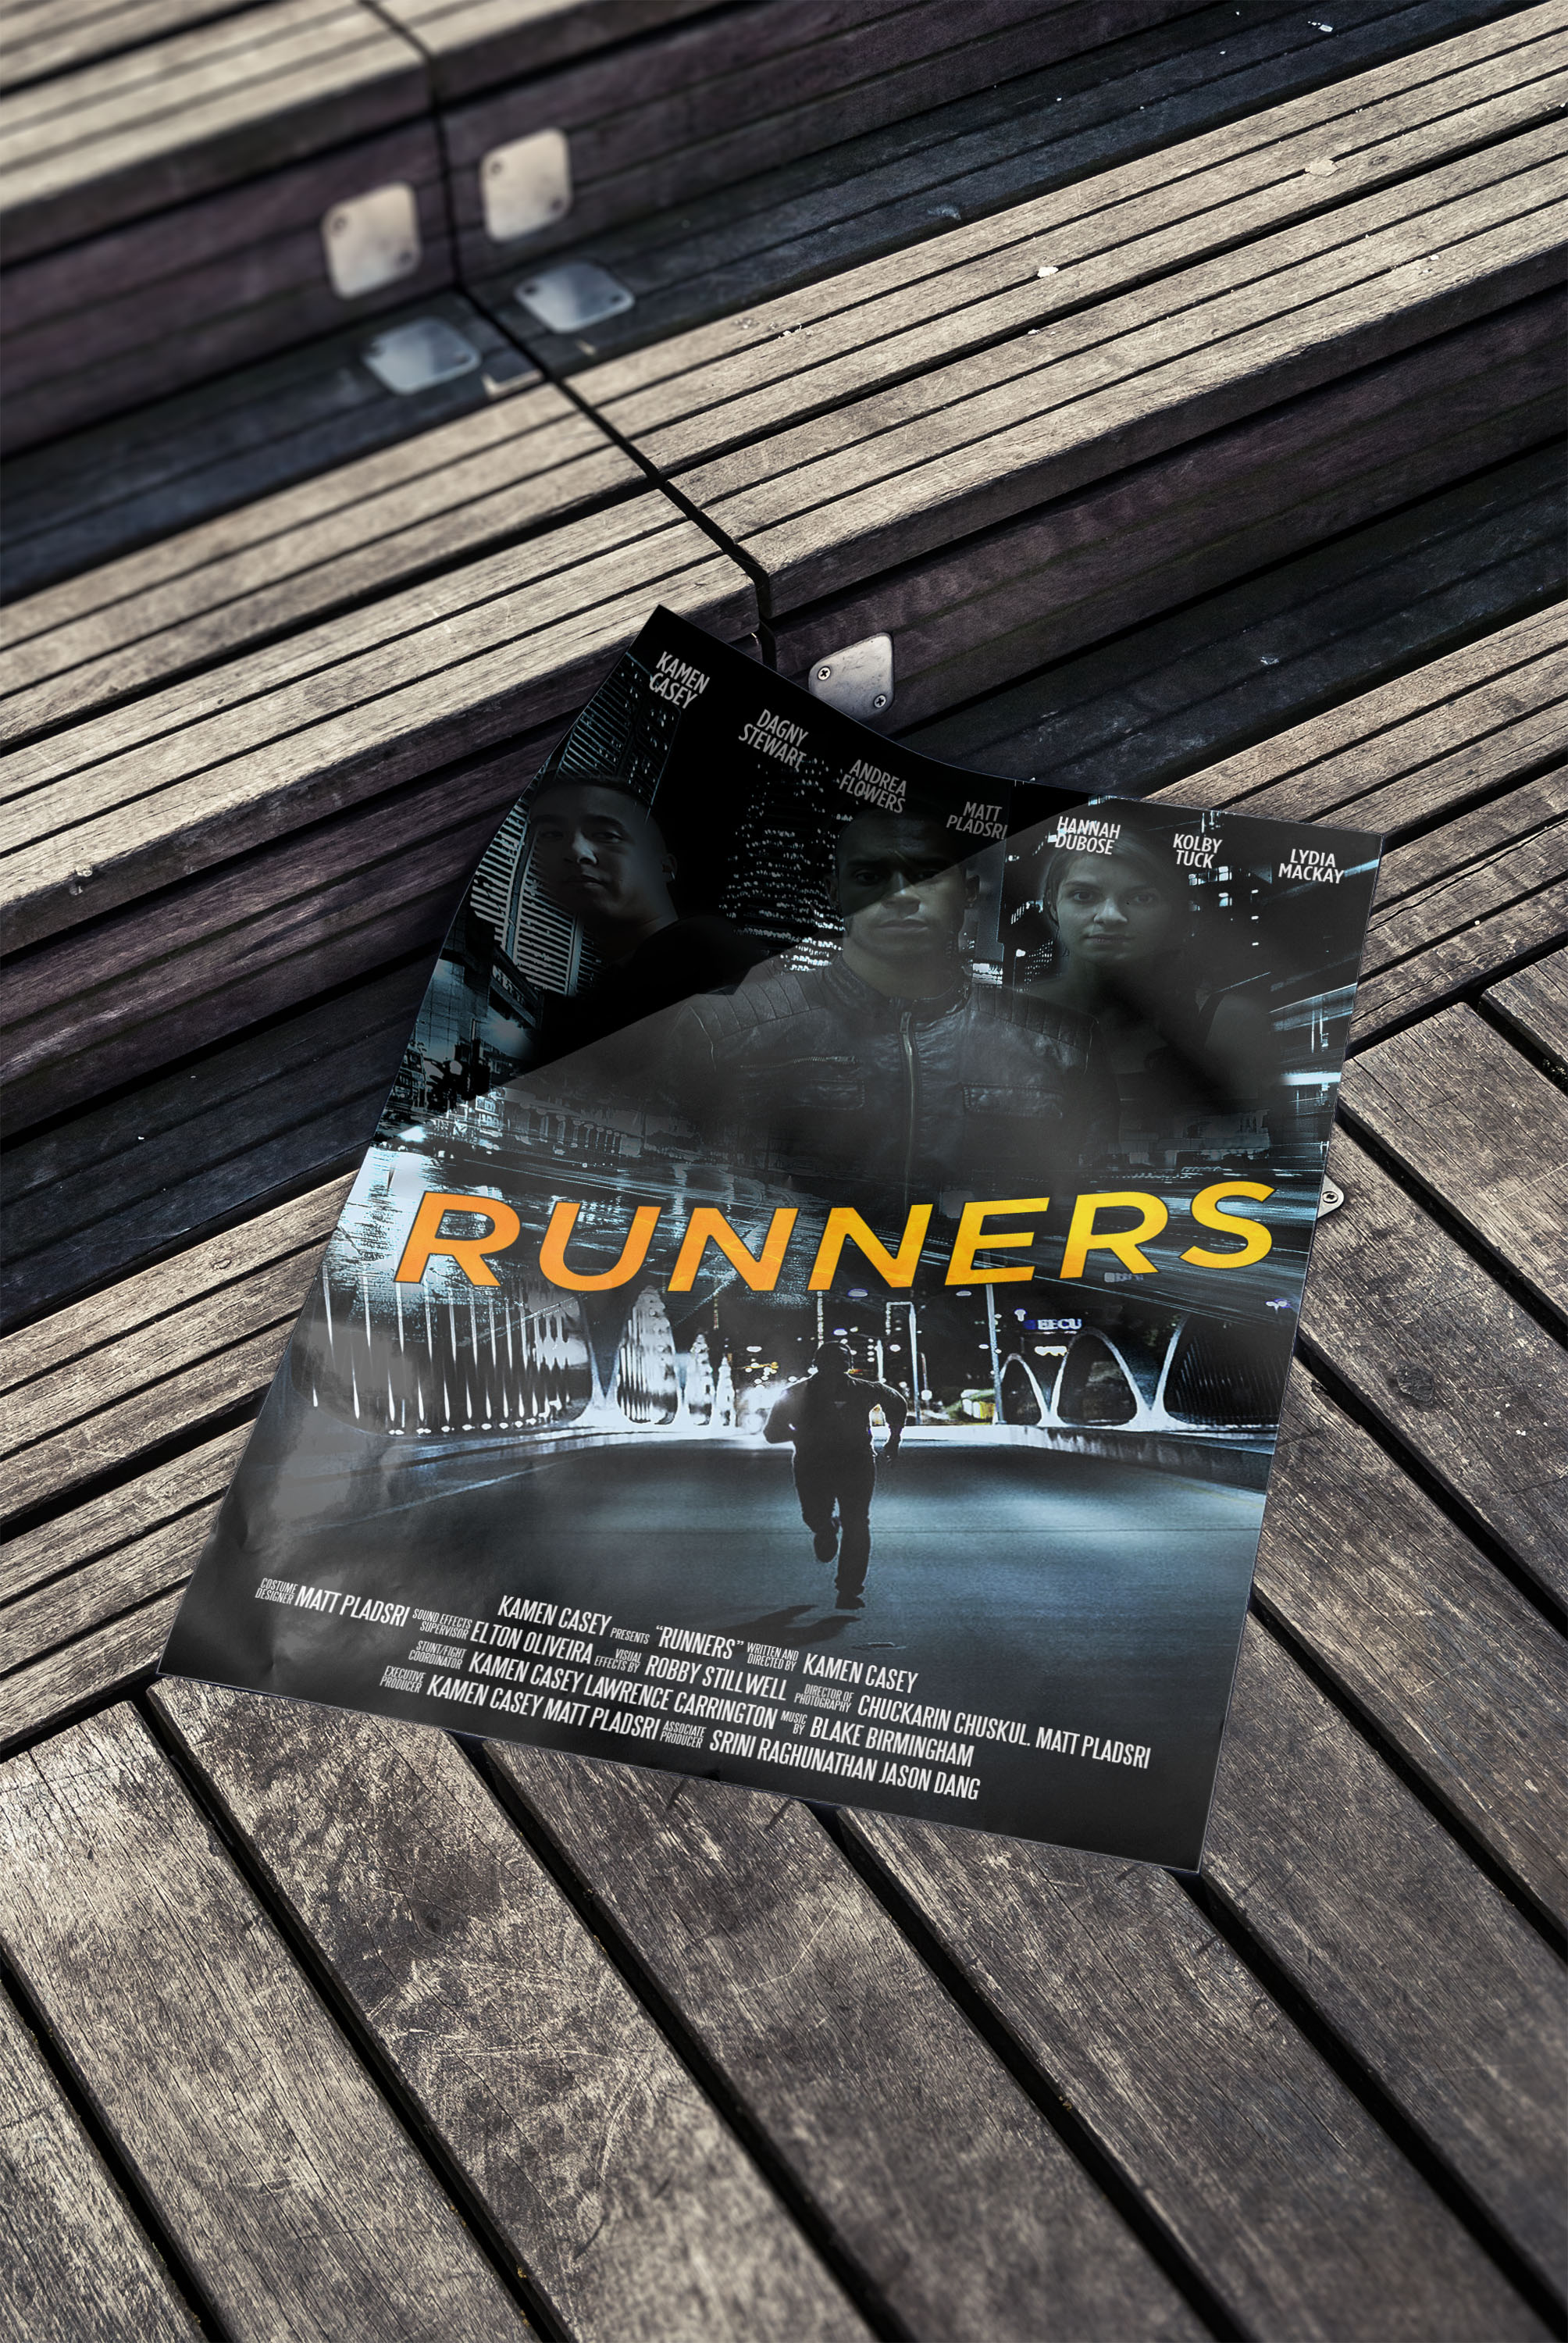 Runners - Poster Mock-up_vertical.jpg